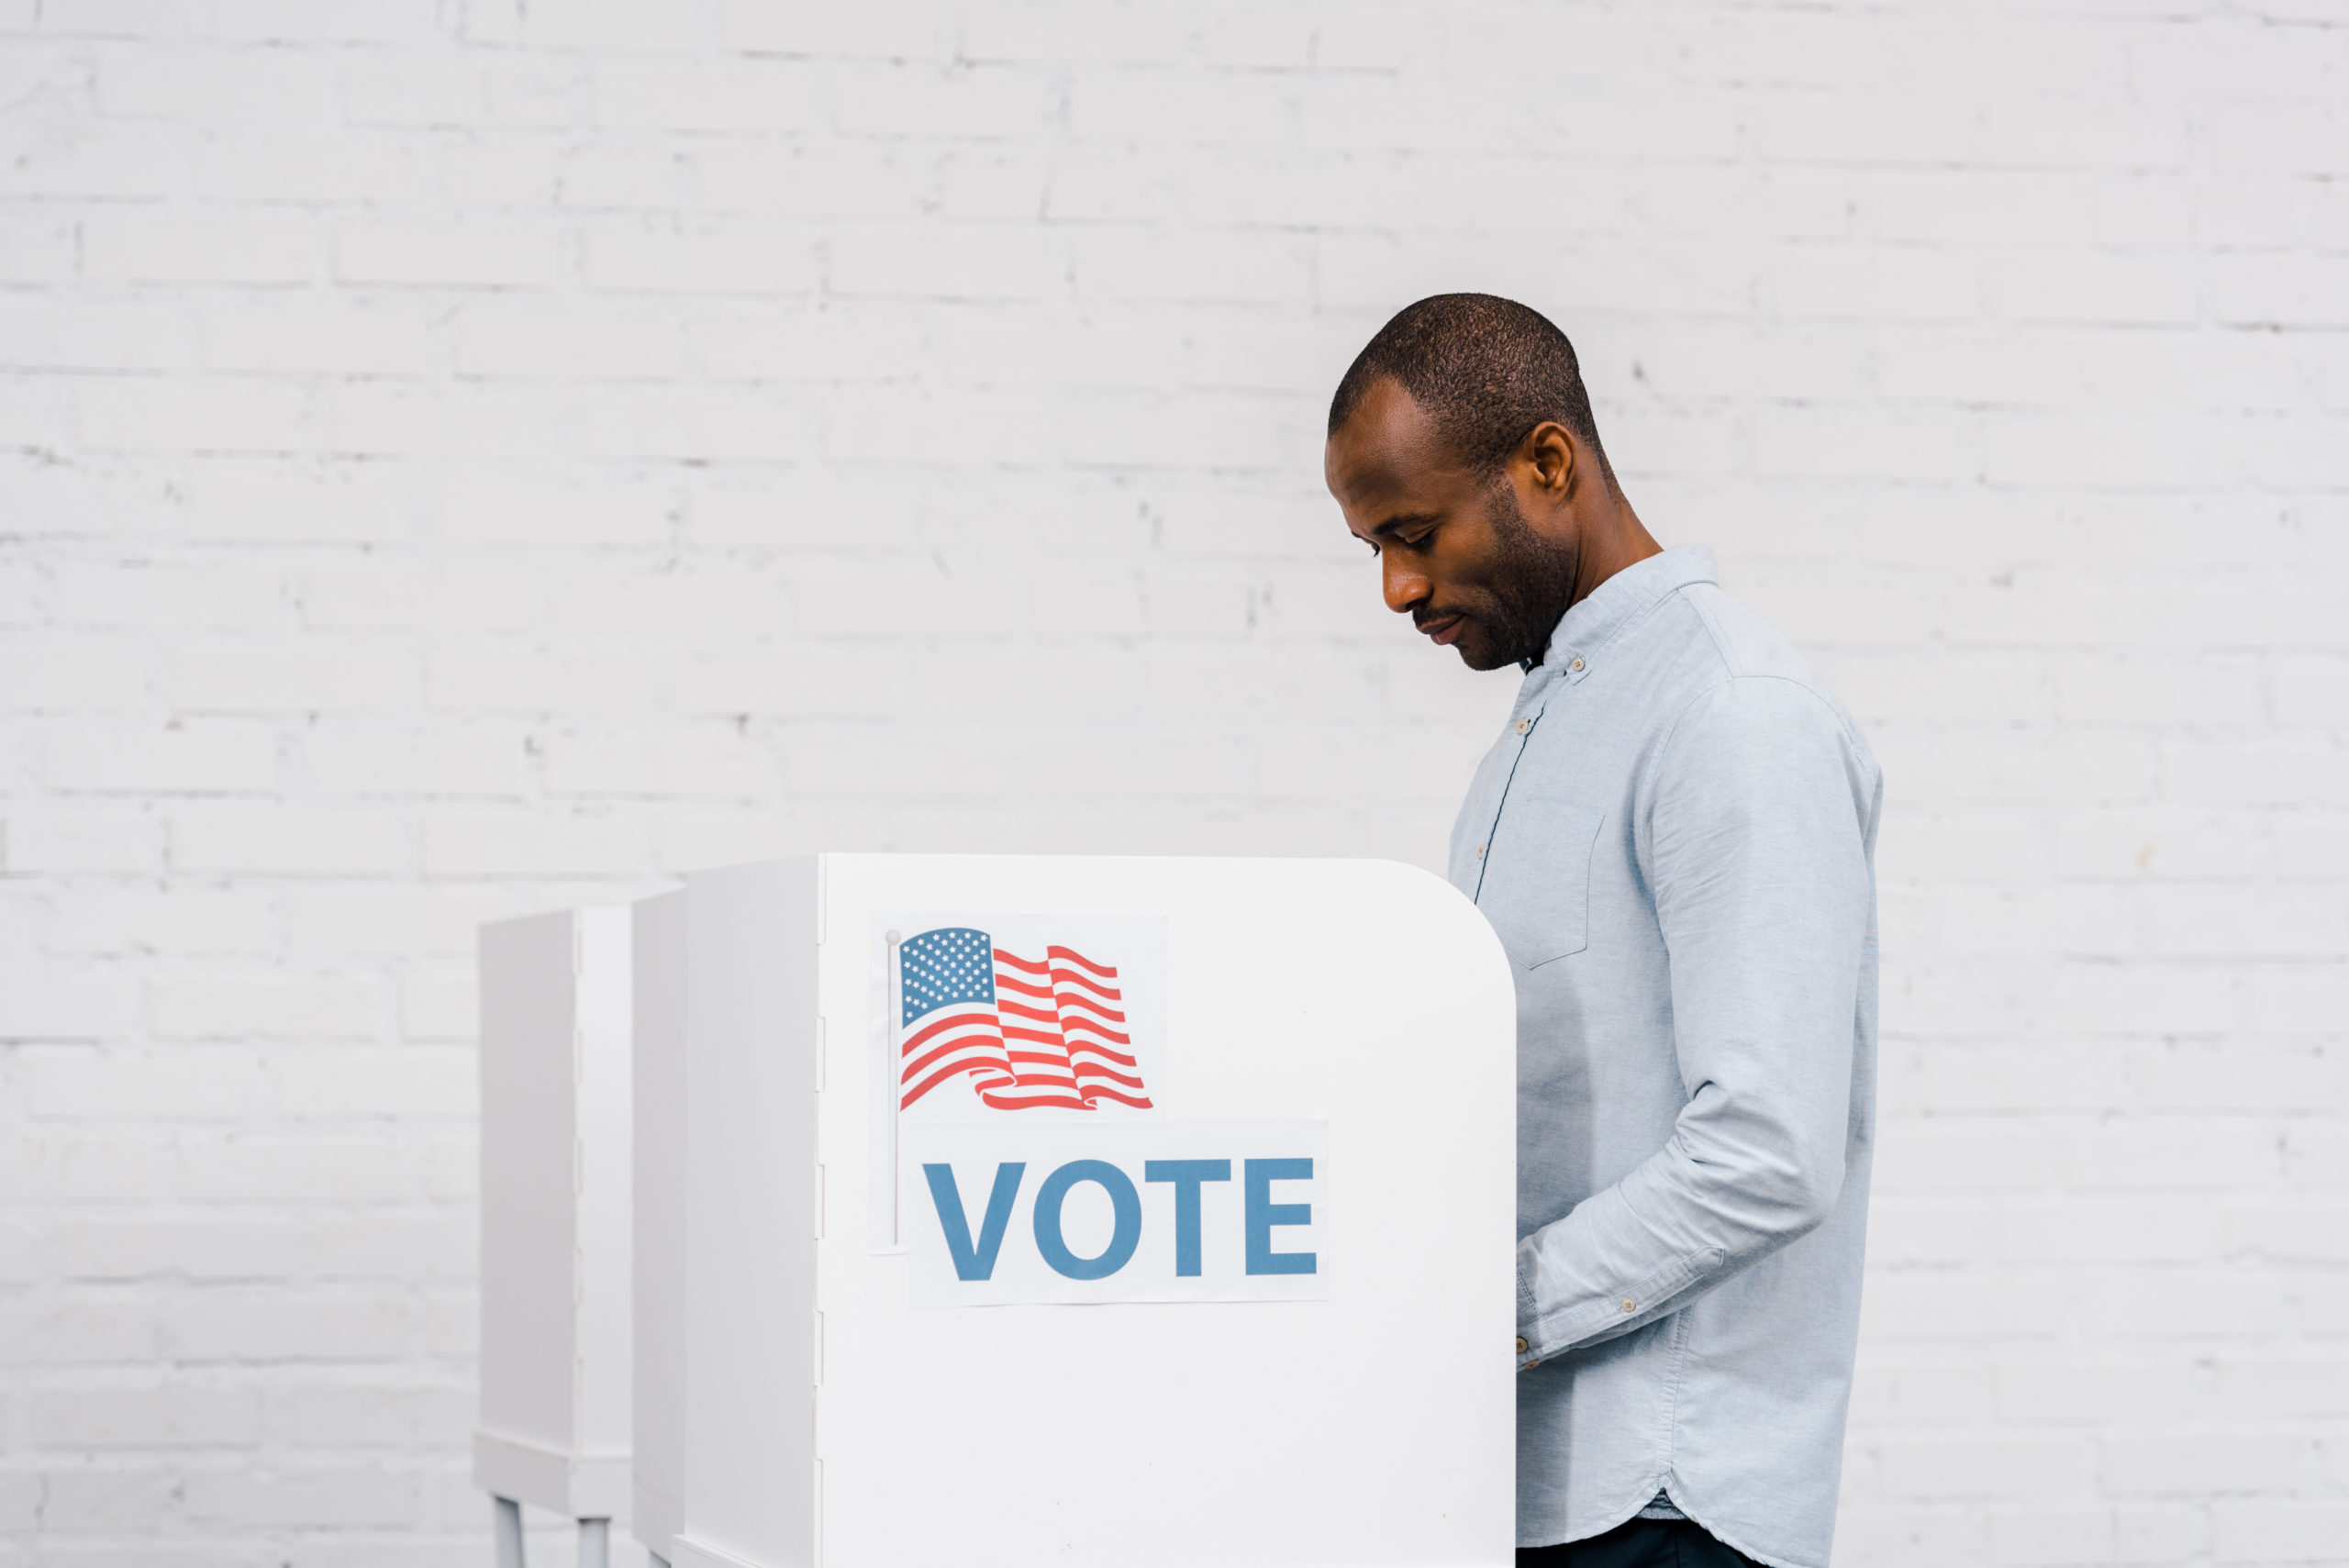 An immigrant casts his vote in the the U.S. presidential election.